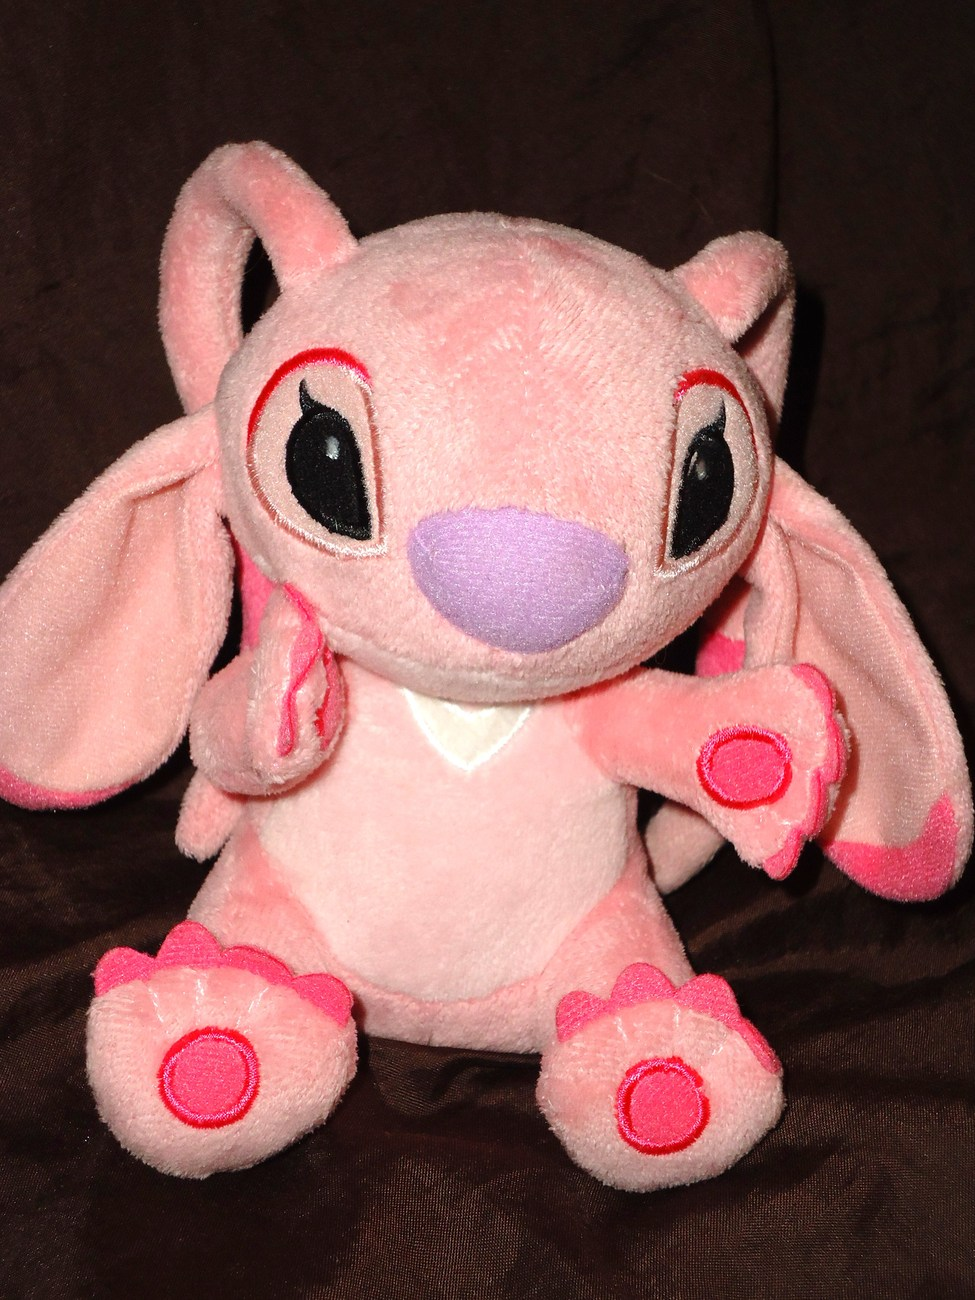 Disney Store Lilo and Stitch Angel Girlfriend Pink Plush Stuffed Animal Doll